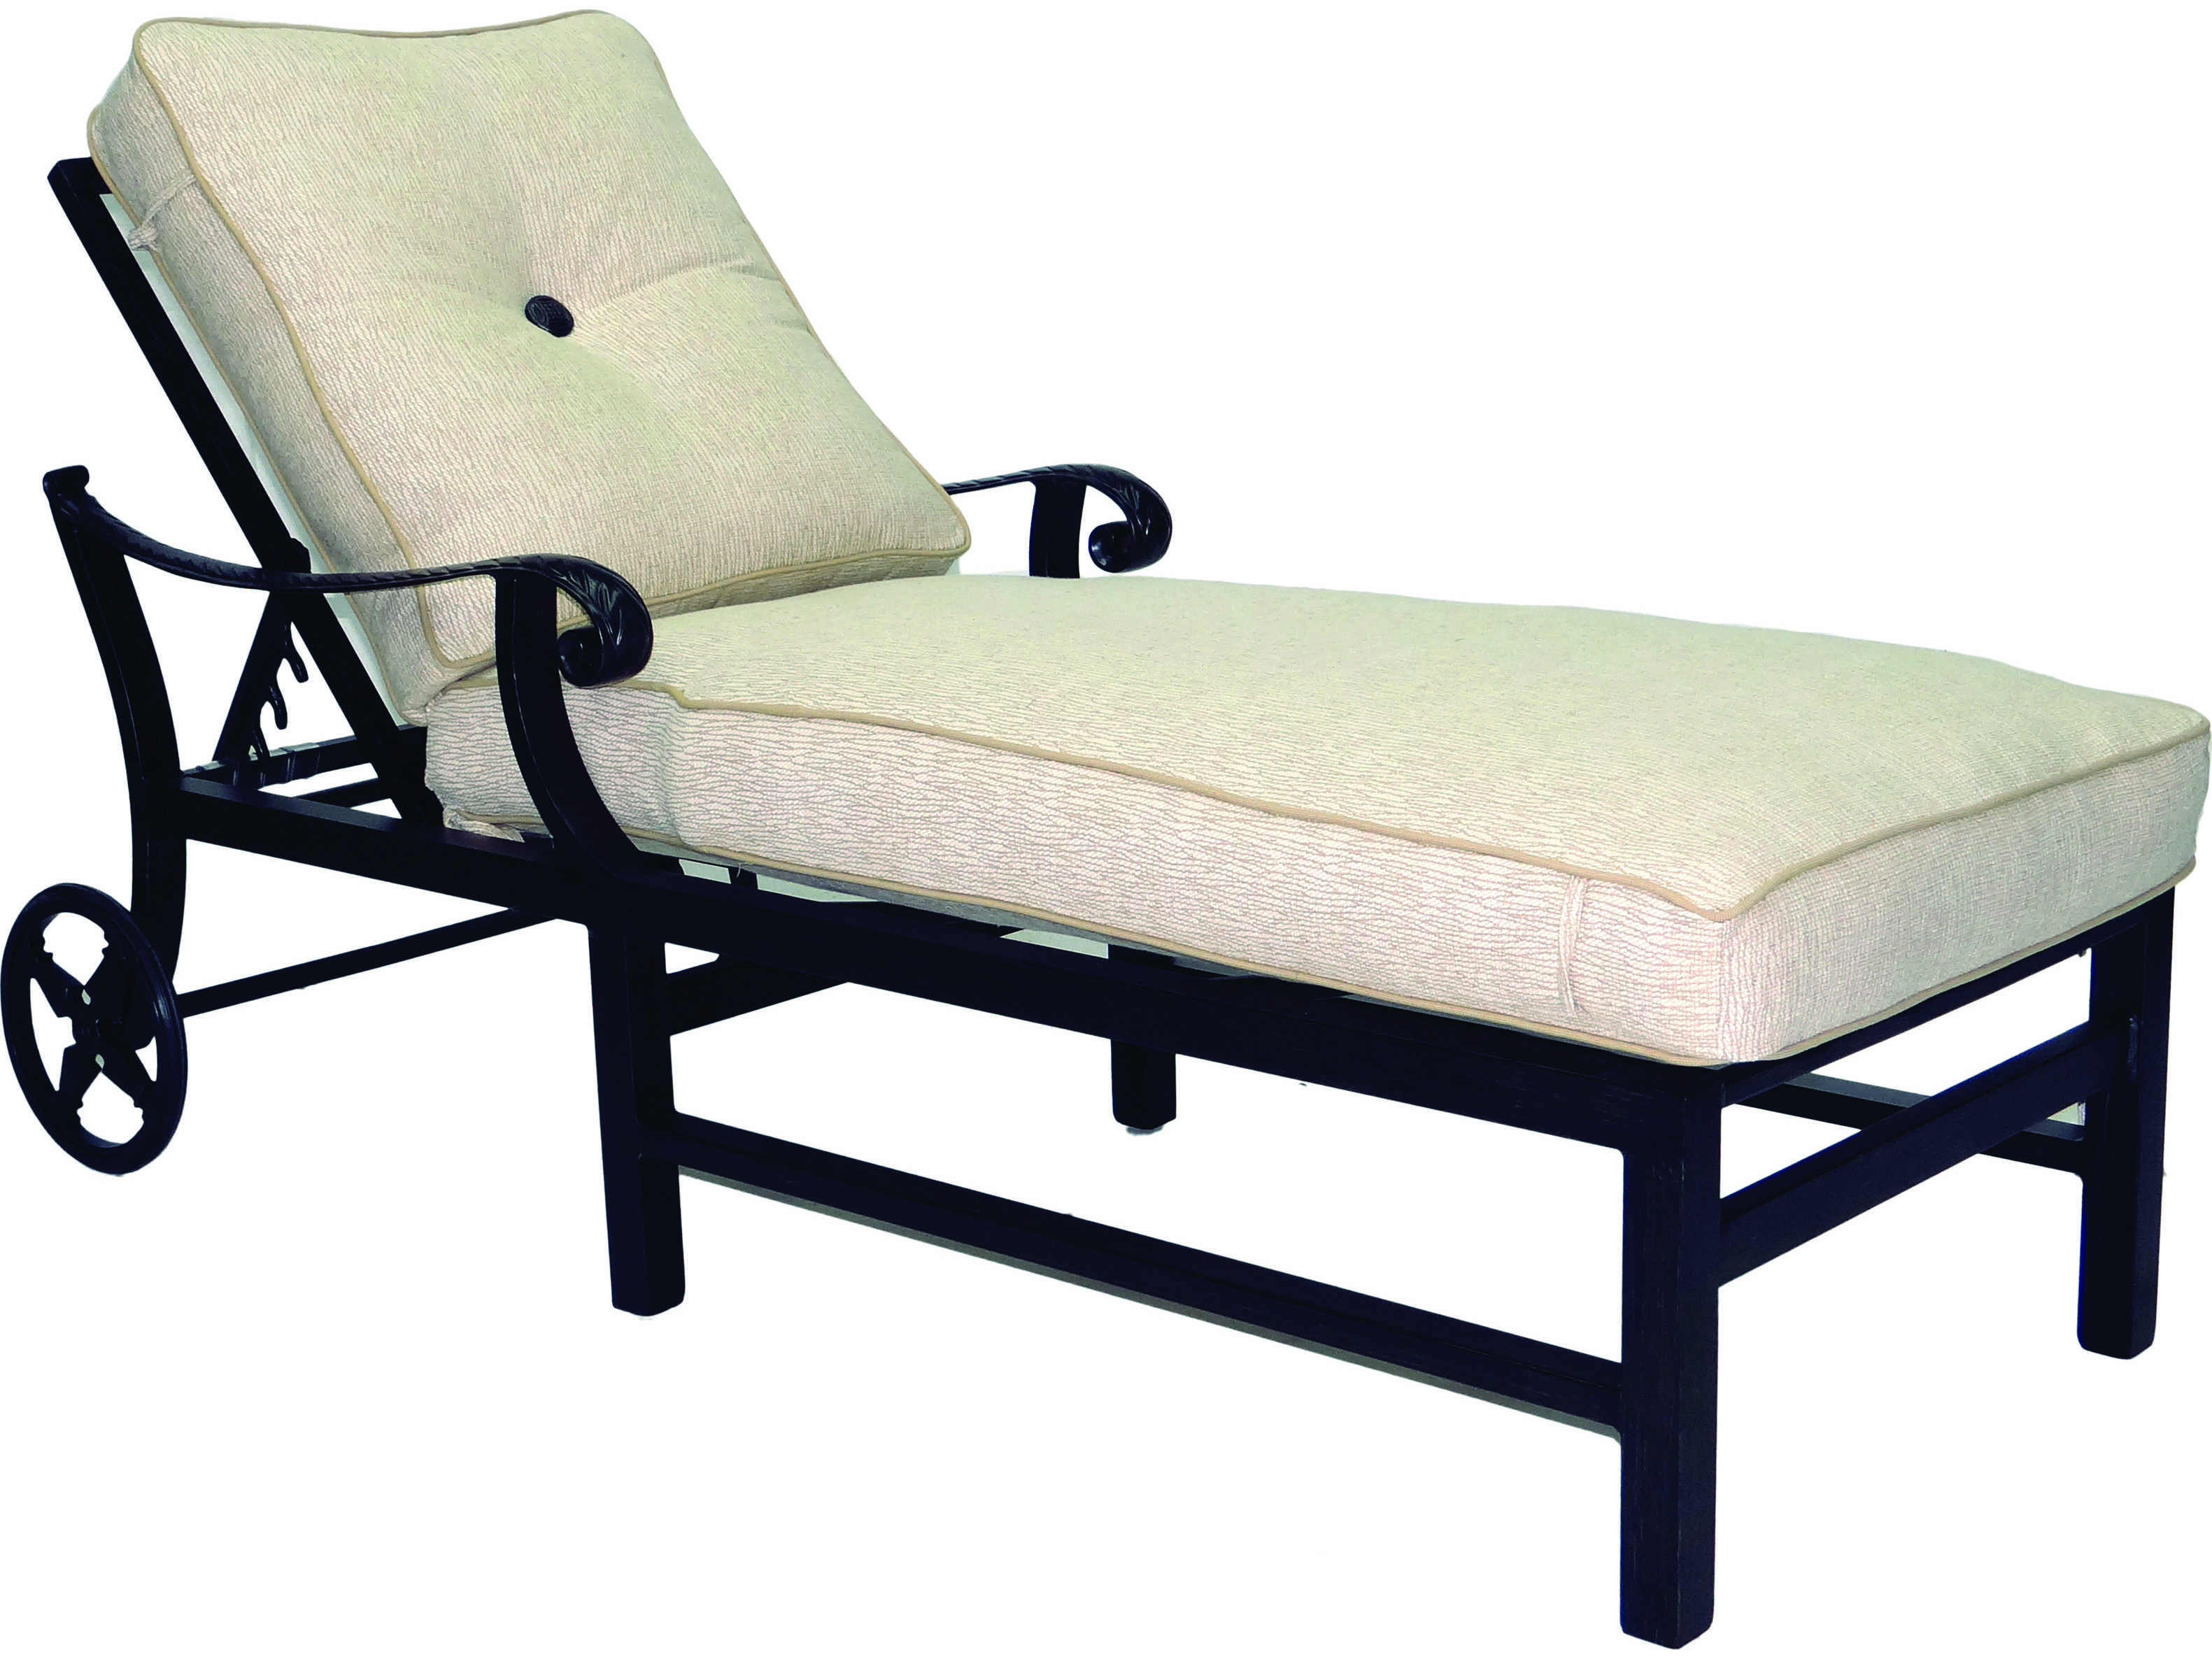 Castelle bellagio cushion cast aluminum chaise lounge with for Aluminum chaise lounge with wheels